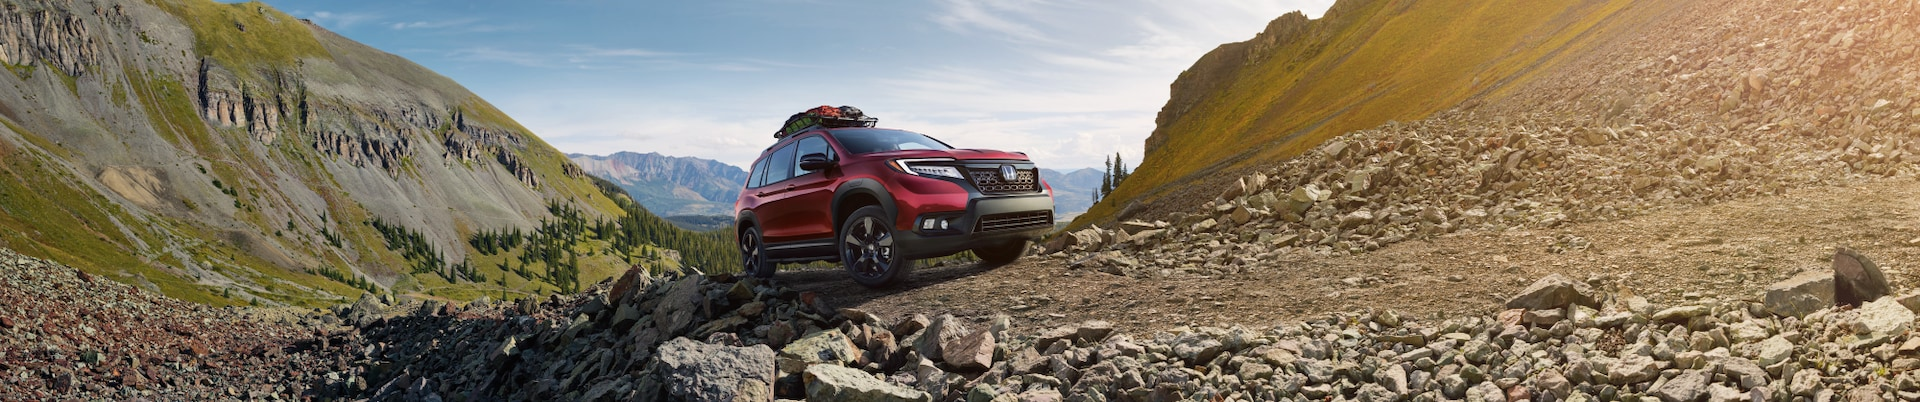 Boch Honda West is a Family Owned Dealership near Boxborough, MA | Red 2020 Honda Passport driving on rocks